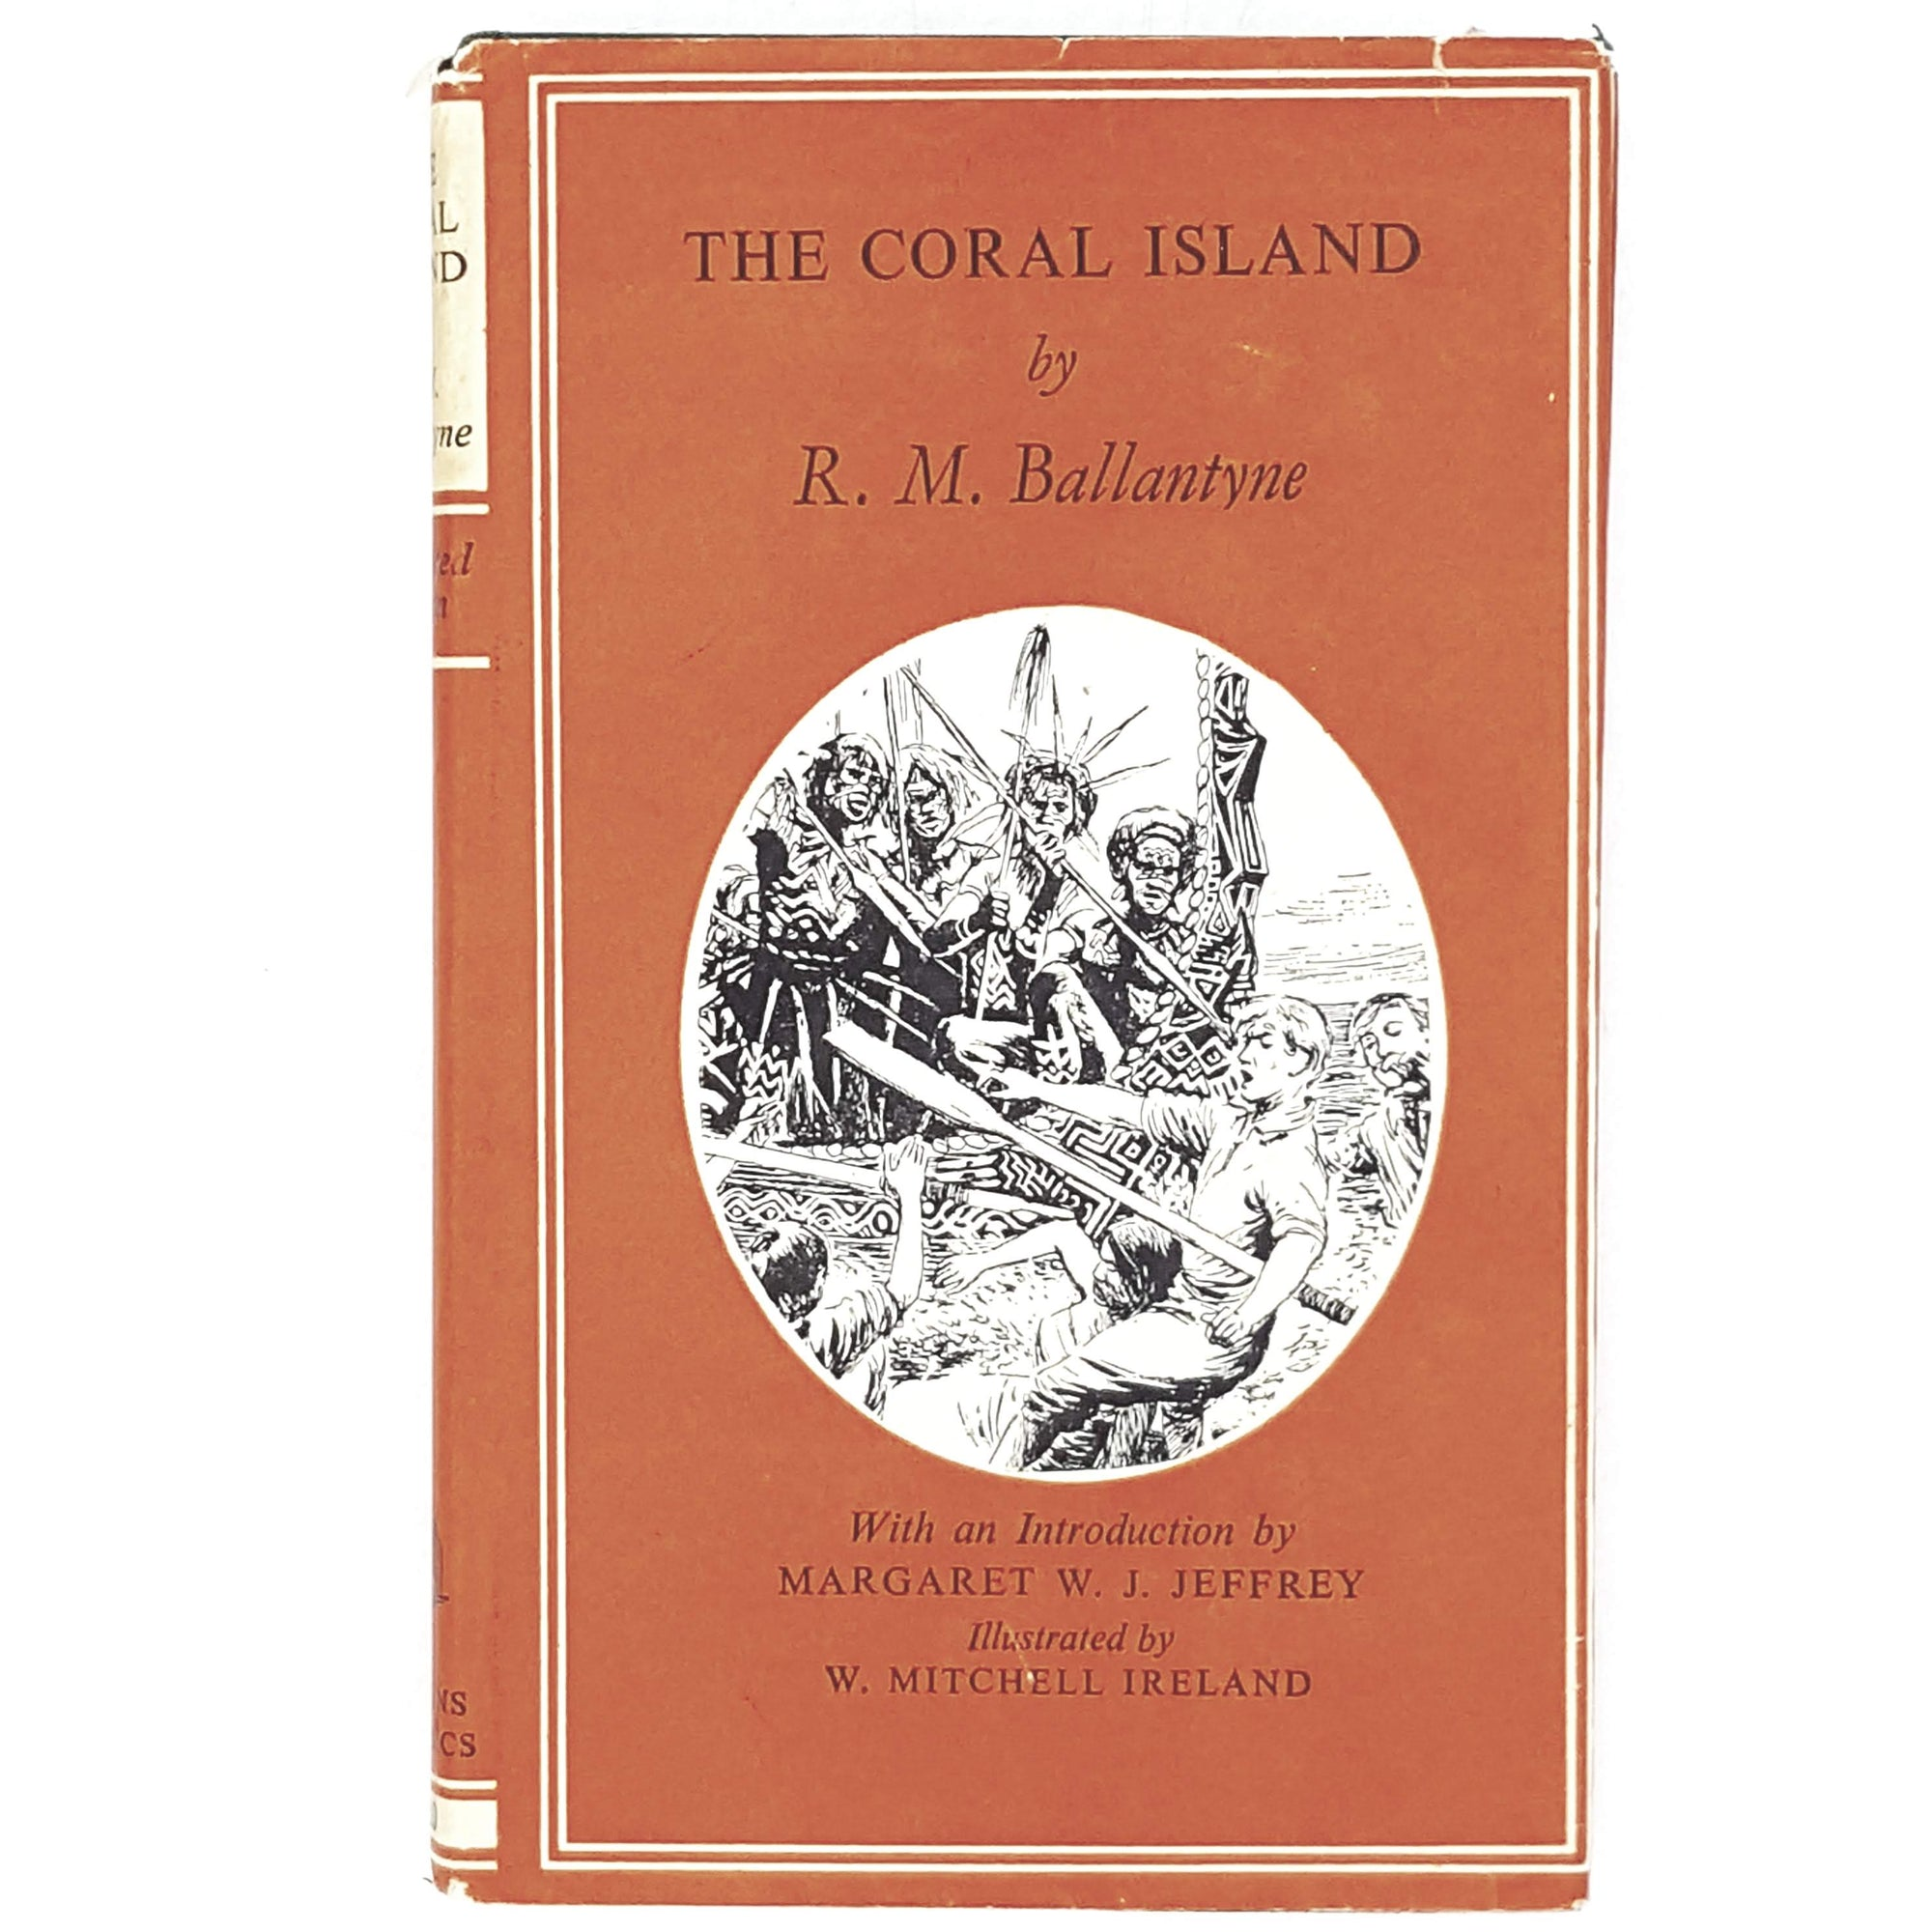 Illustrated The Coral Island by R. M. Ballantyne